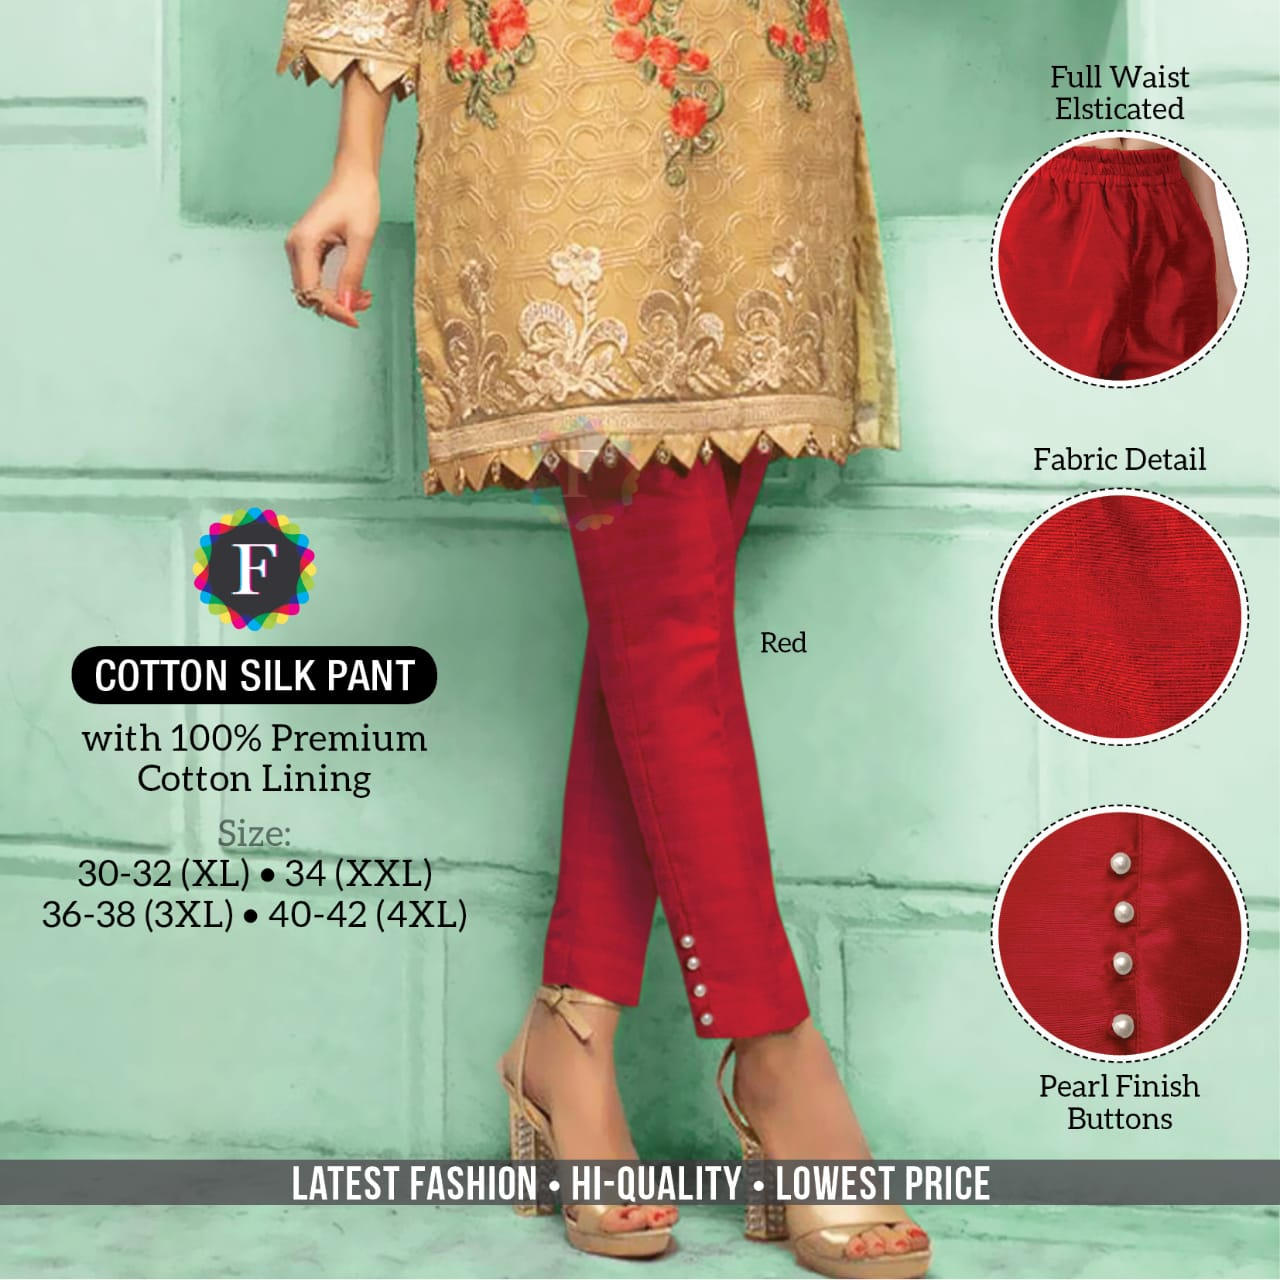 Cotton Silk Pant Bottom Wear Collection Pants Buy Online